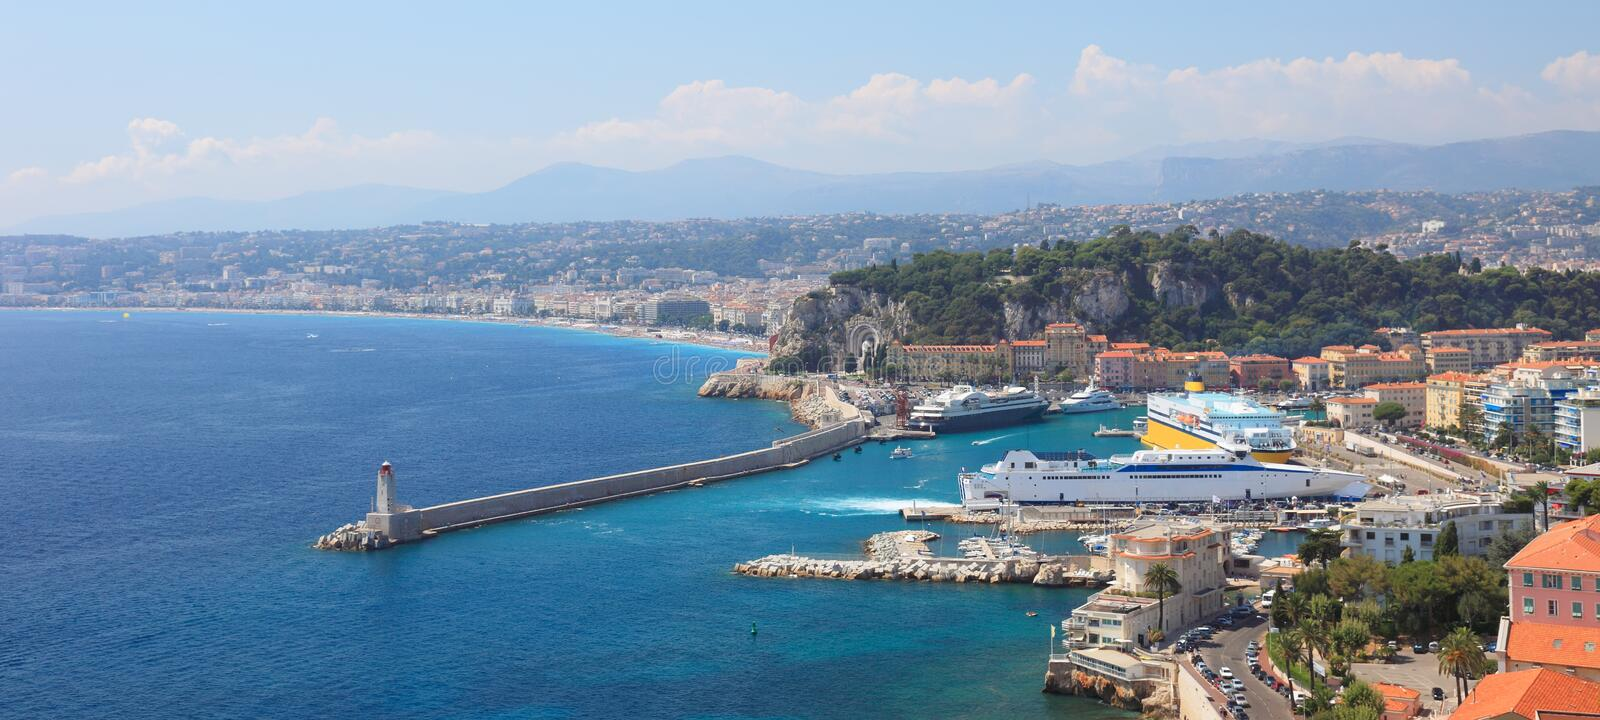 Download Panoramic View Of Harbor Of The City Of Nice. Stock Photo - Image of metropolitan, blue: 13560886